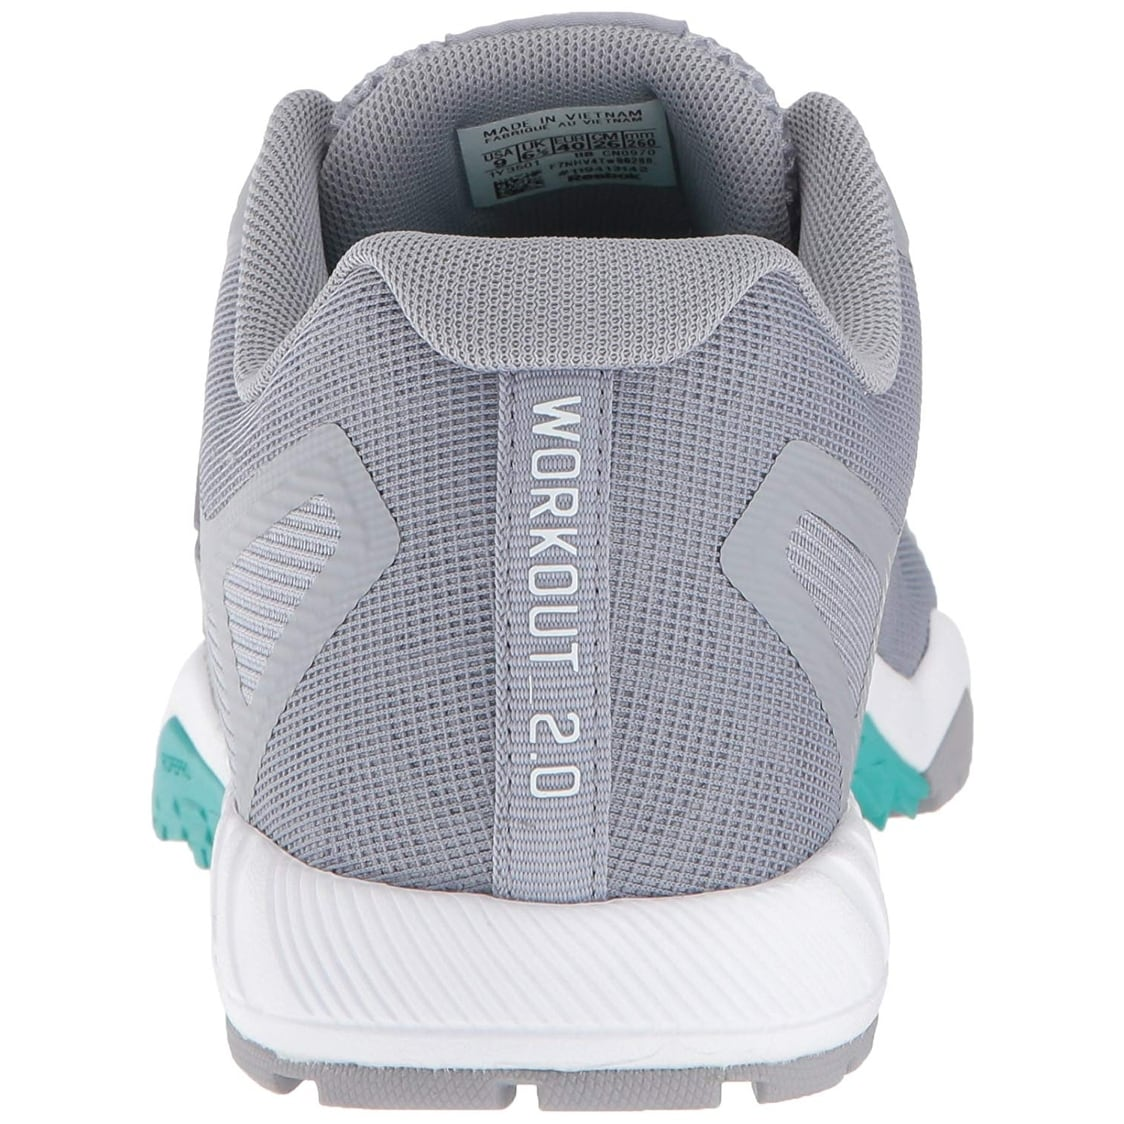 e33e91f2a612d Shop Reebok Women s Ros Workout Tr 2-0 Cross-Trainer Shoe - Free Shipping  On Orders Over  45 - Overstock - 27745405